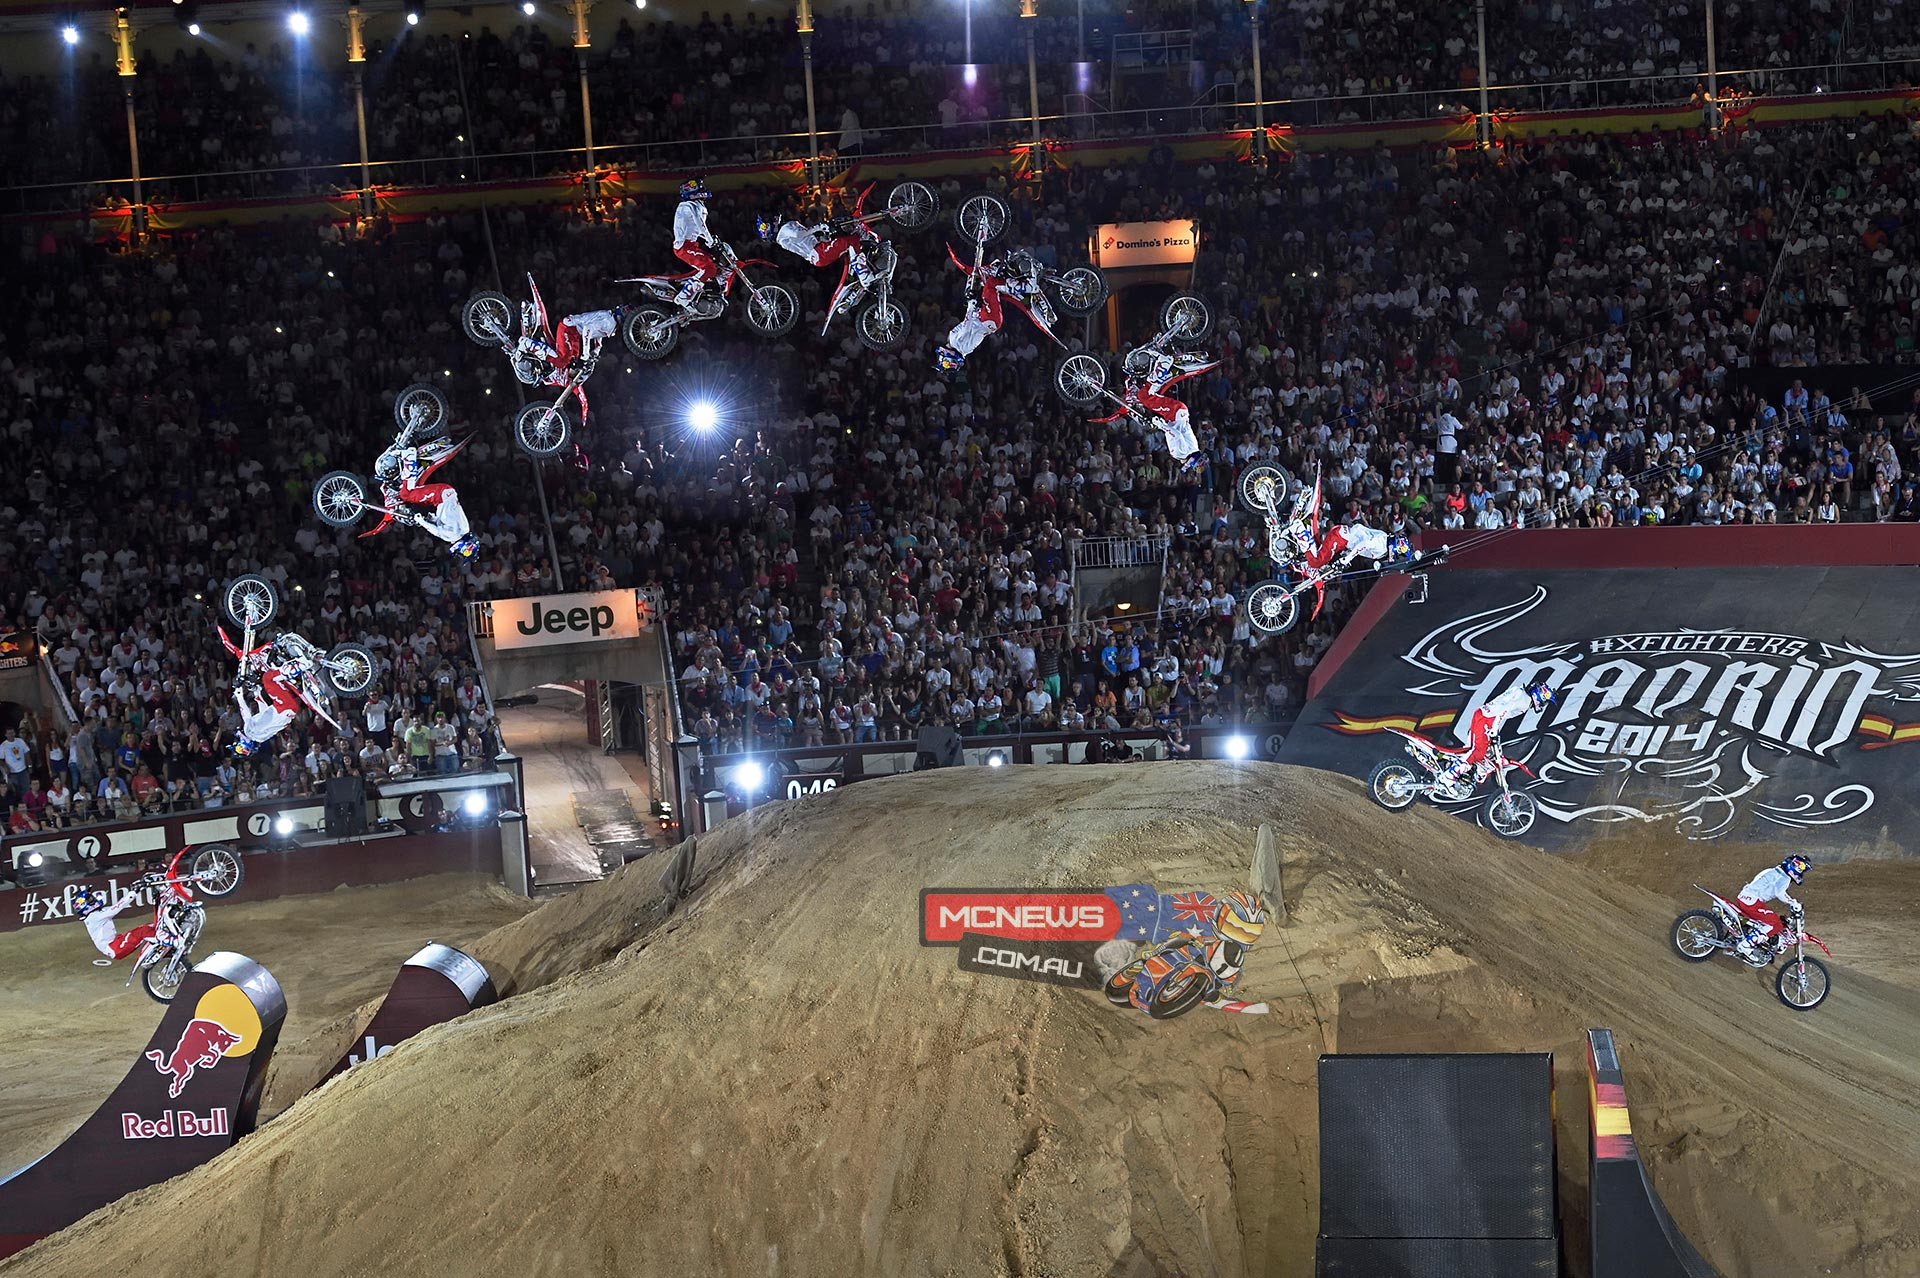 Australia's Josh Sheehan has mastered one of the most daunting jumps Red Bull X-Fighters has ever seen and used the Double Backflip to put himself into championship contention.